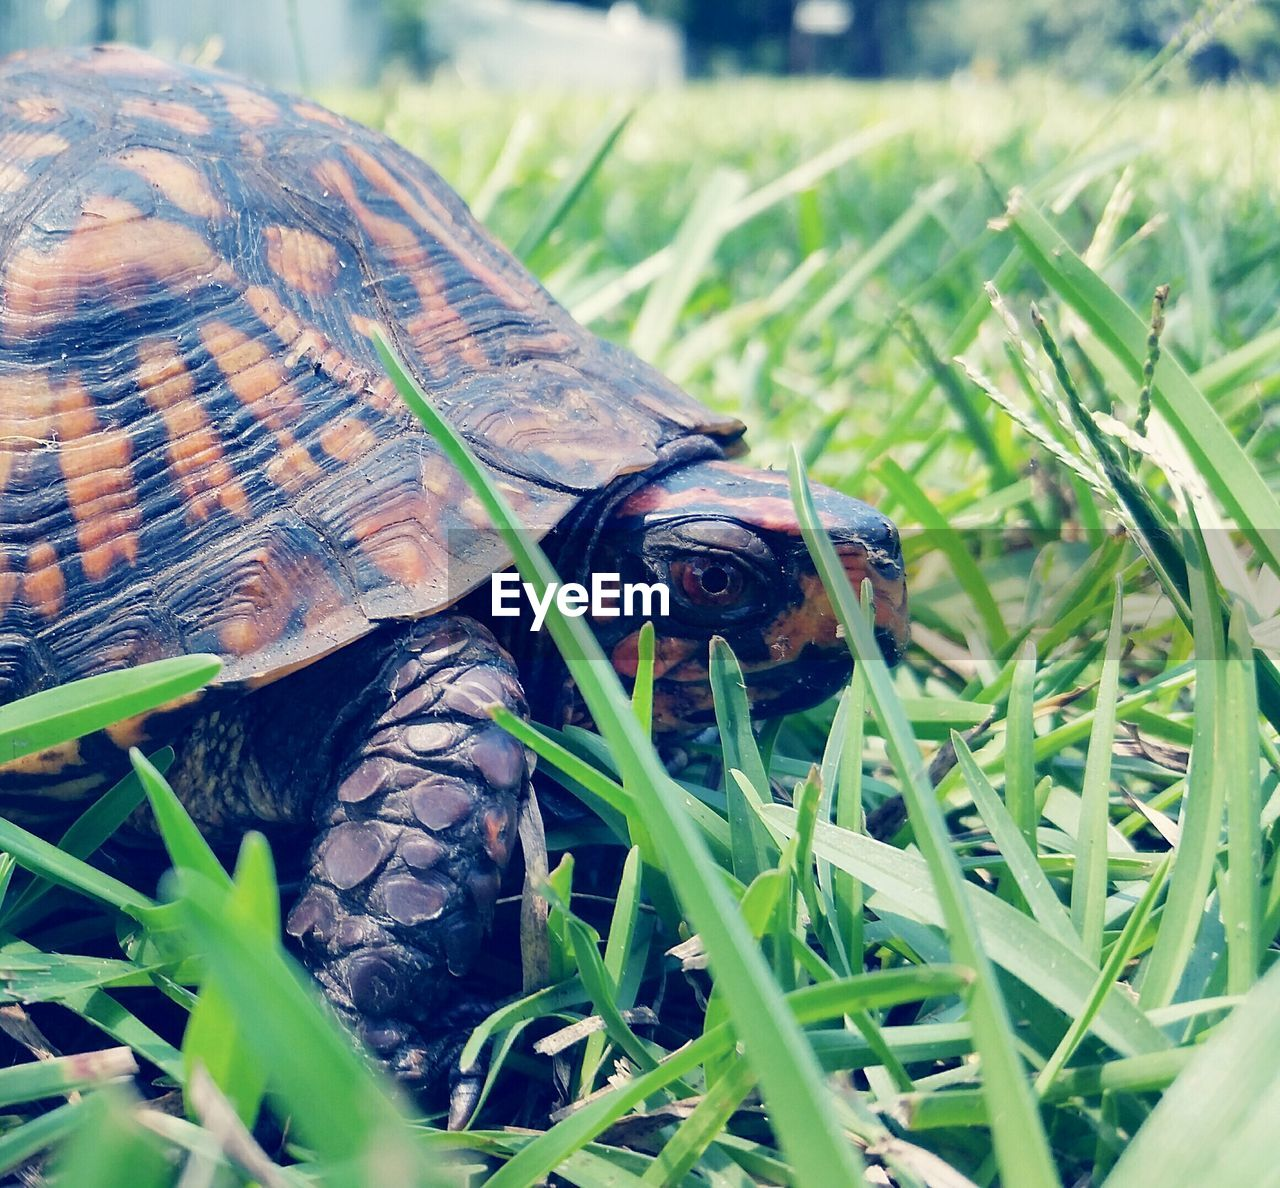 one animal, animal themes, animals in the wild, grass, wildlife, animal wildlife, nature, day, no people, reptile, outdoors, tortoise, plant, close-up, tortoise shell